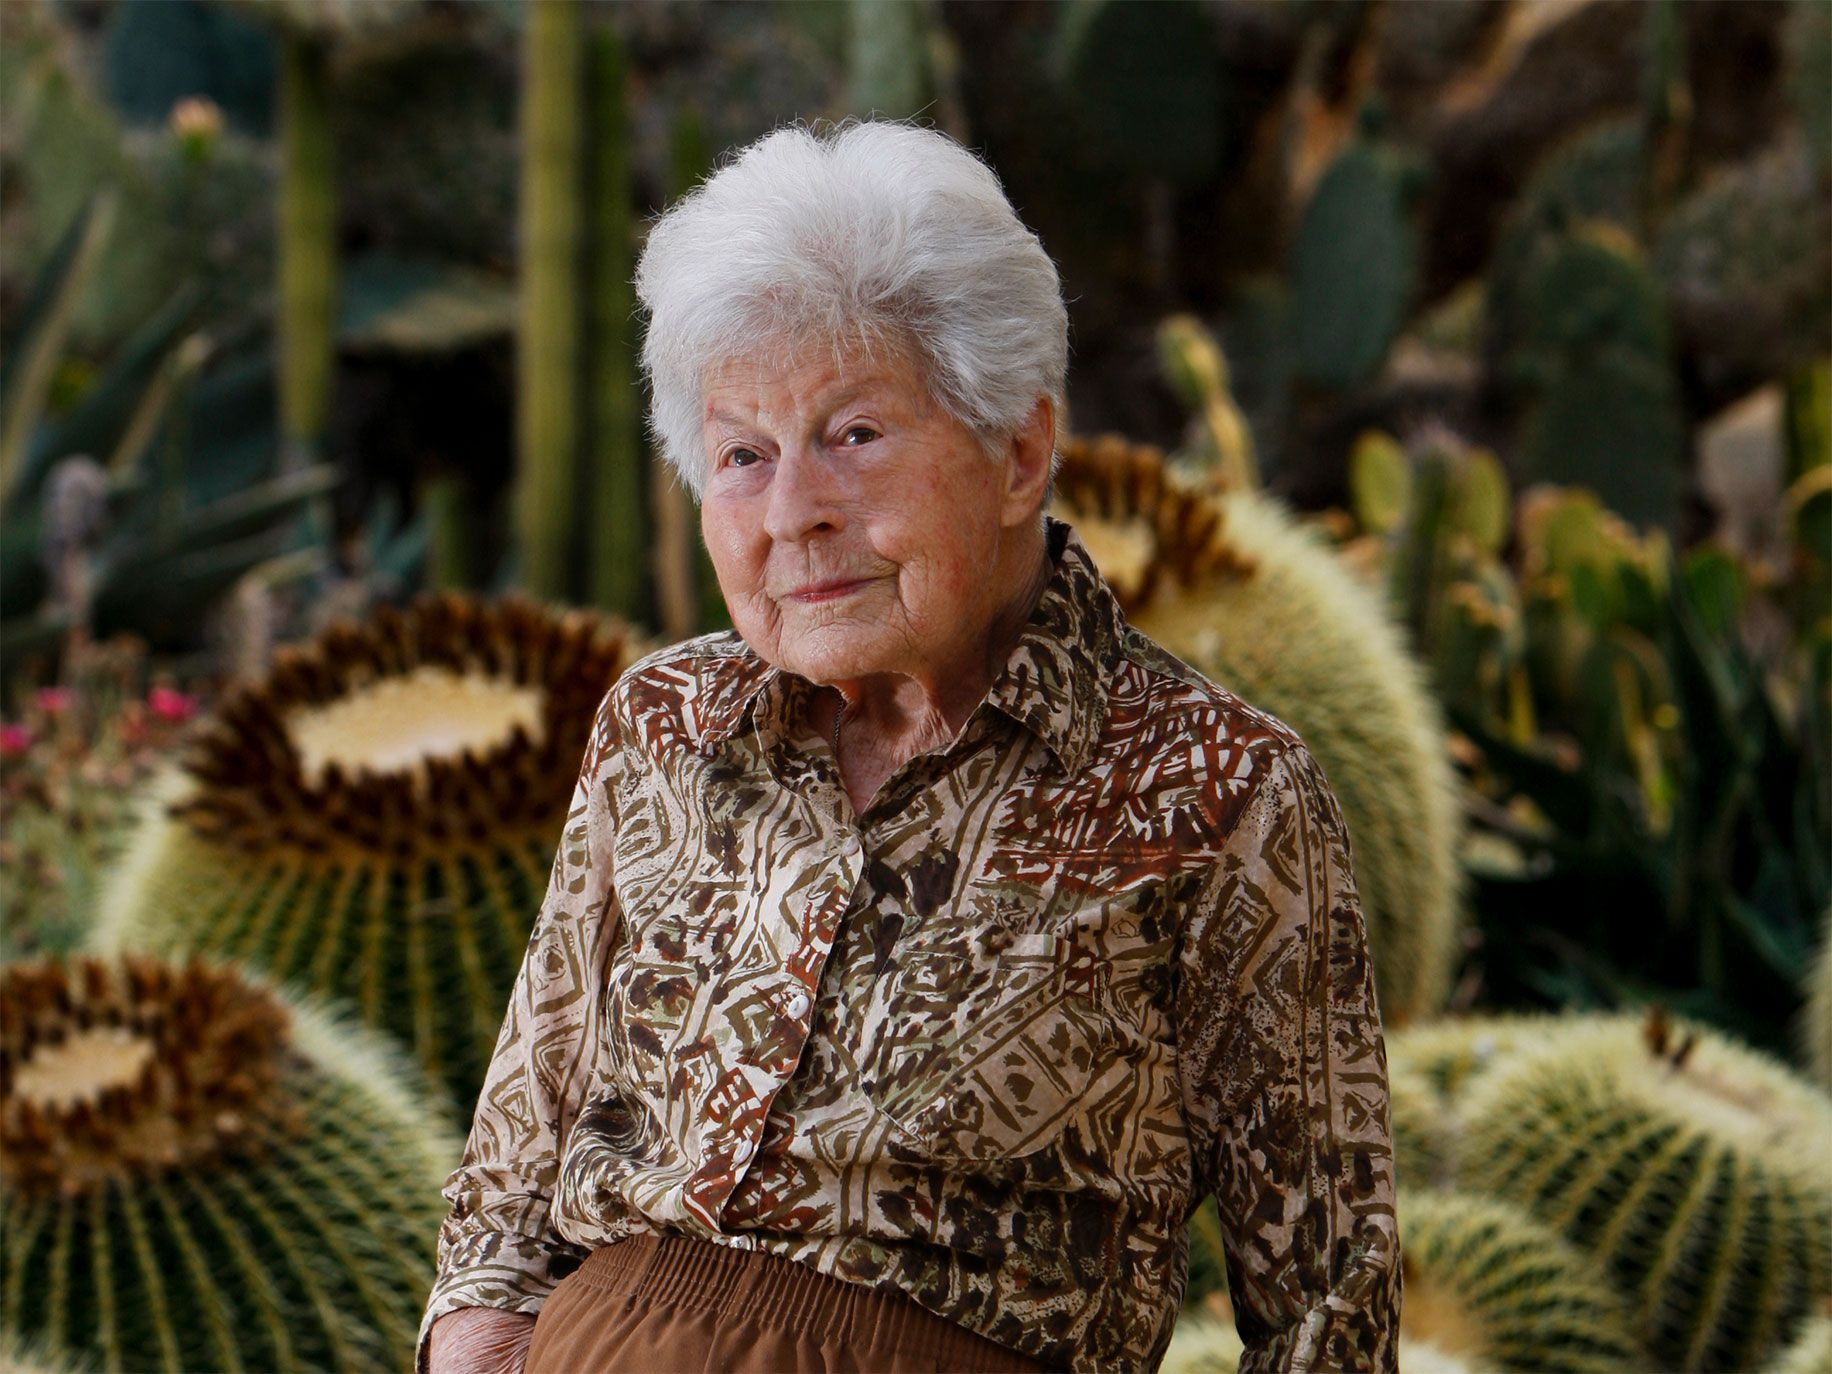 Ruth Bancroft, just before her 100th birthday, in her cactus and succulent garden in Walnut Creek.